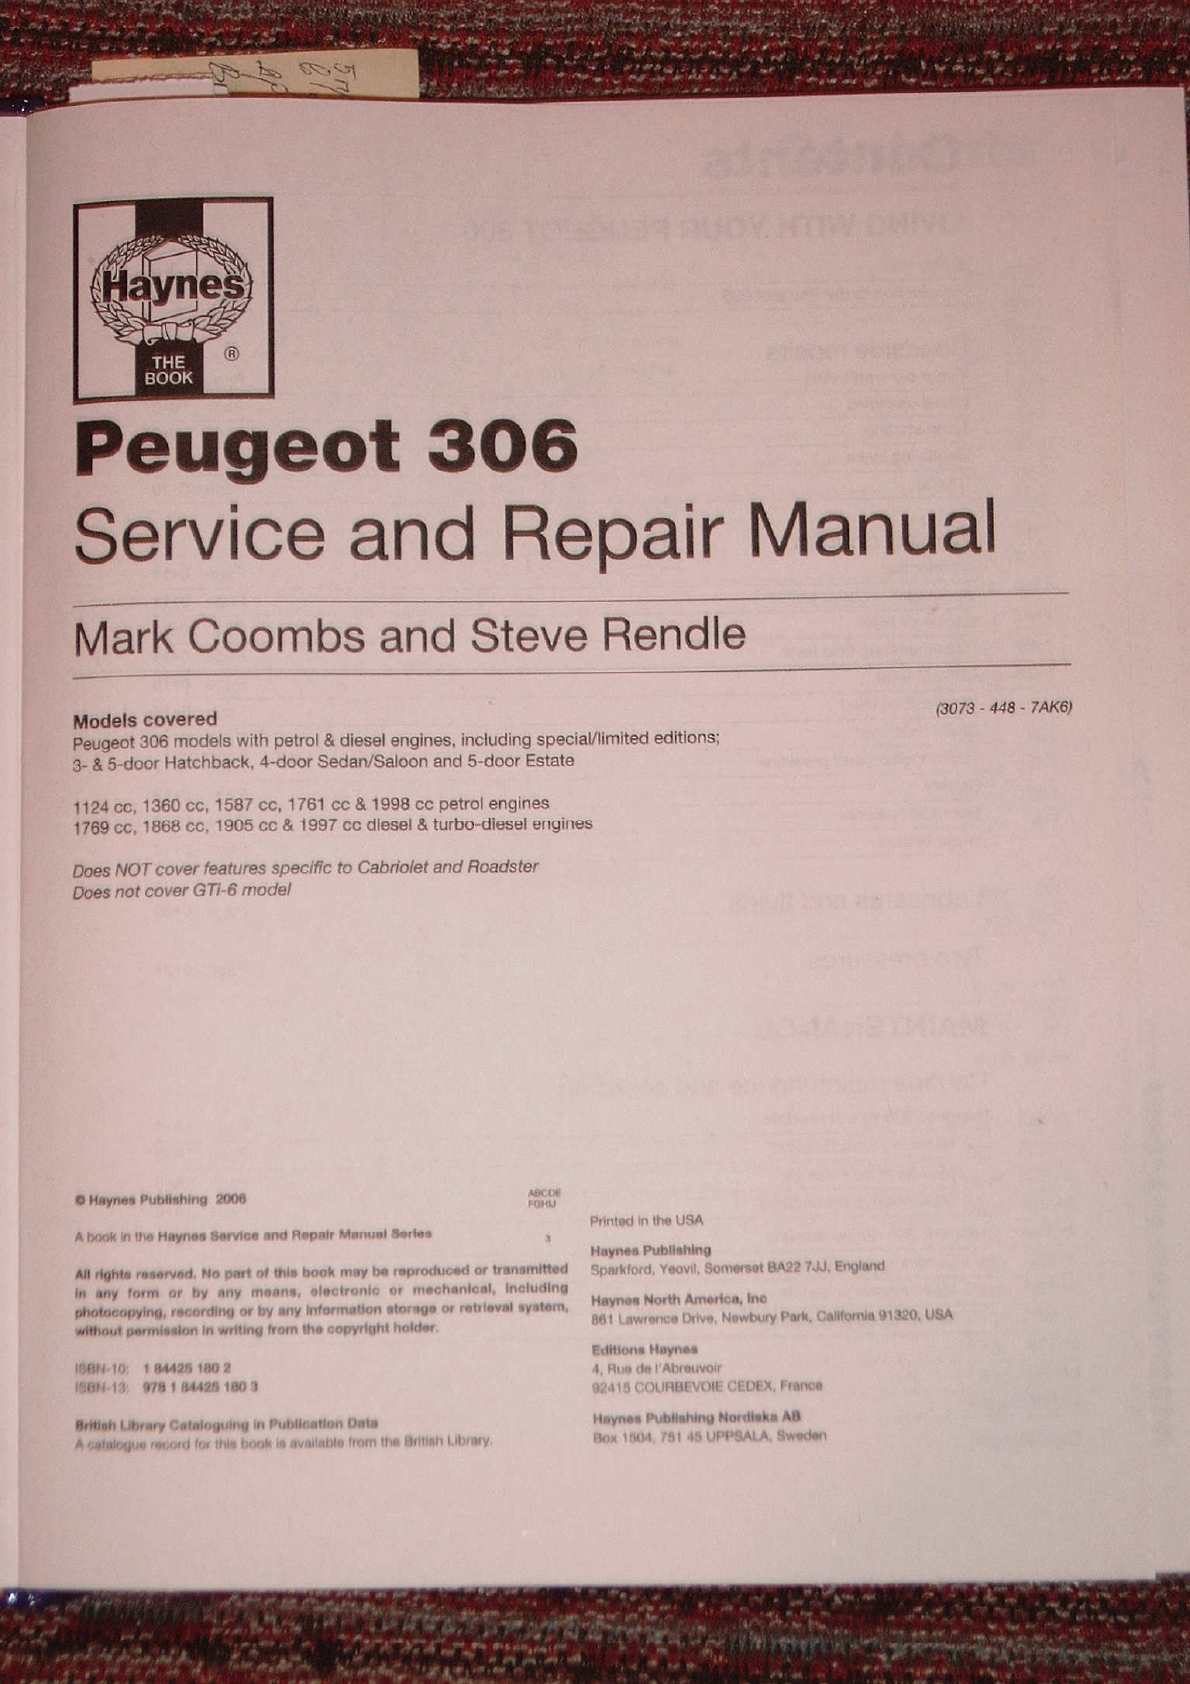 peugeot 306 workshop manual haynes pdf munkaasztalok pinterest rh pinterest com repair manual peugeot 306 haynes manual peugeot 206 download